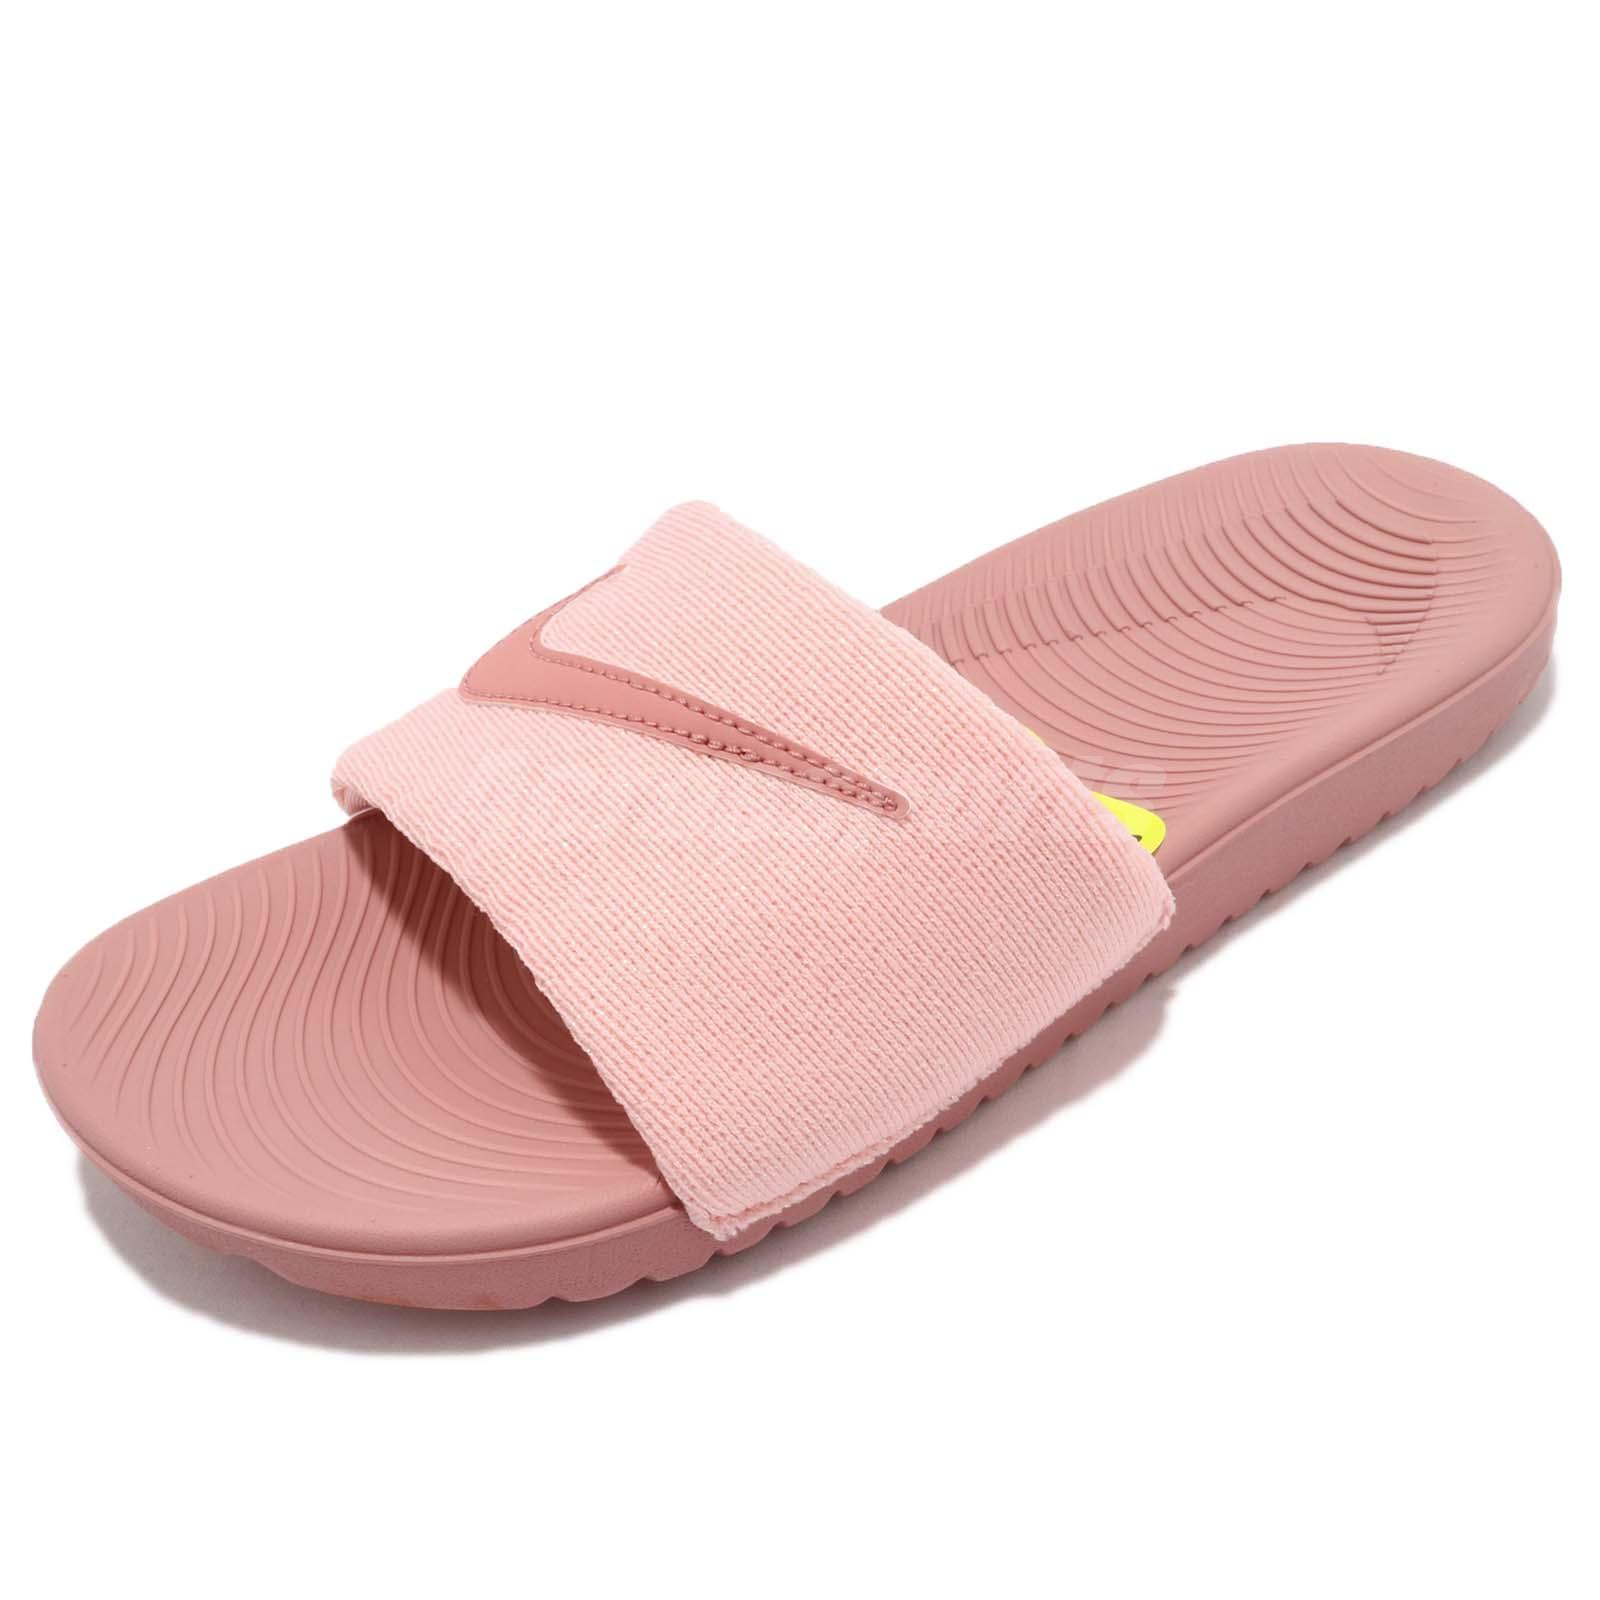 d24f94c1cd0d Nike Kawa Slide SE GS PS Pink Kid Youth Junior Sports Sandal Slippers  AJ2503-601